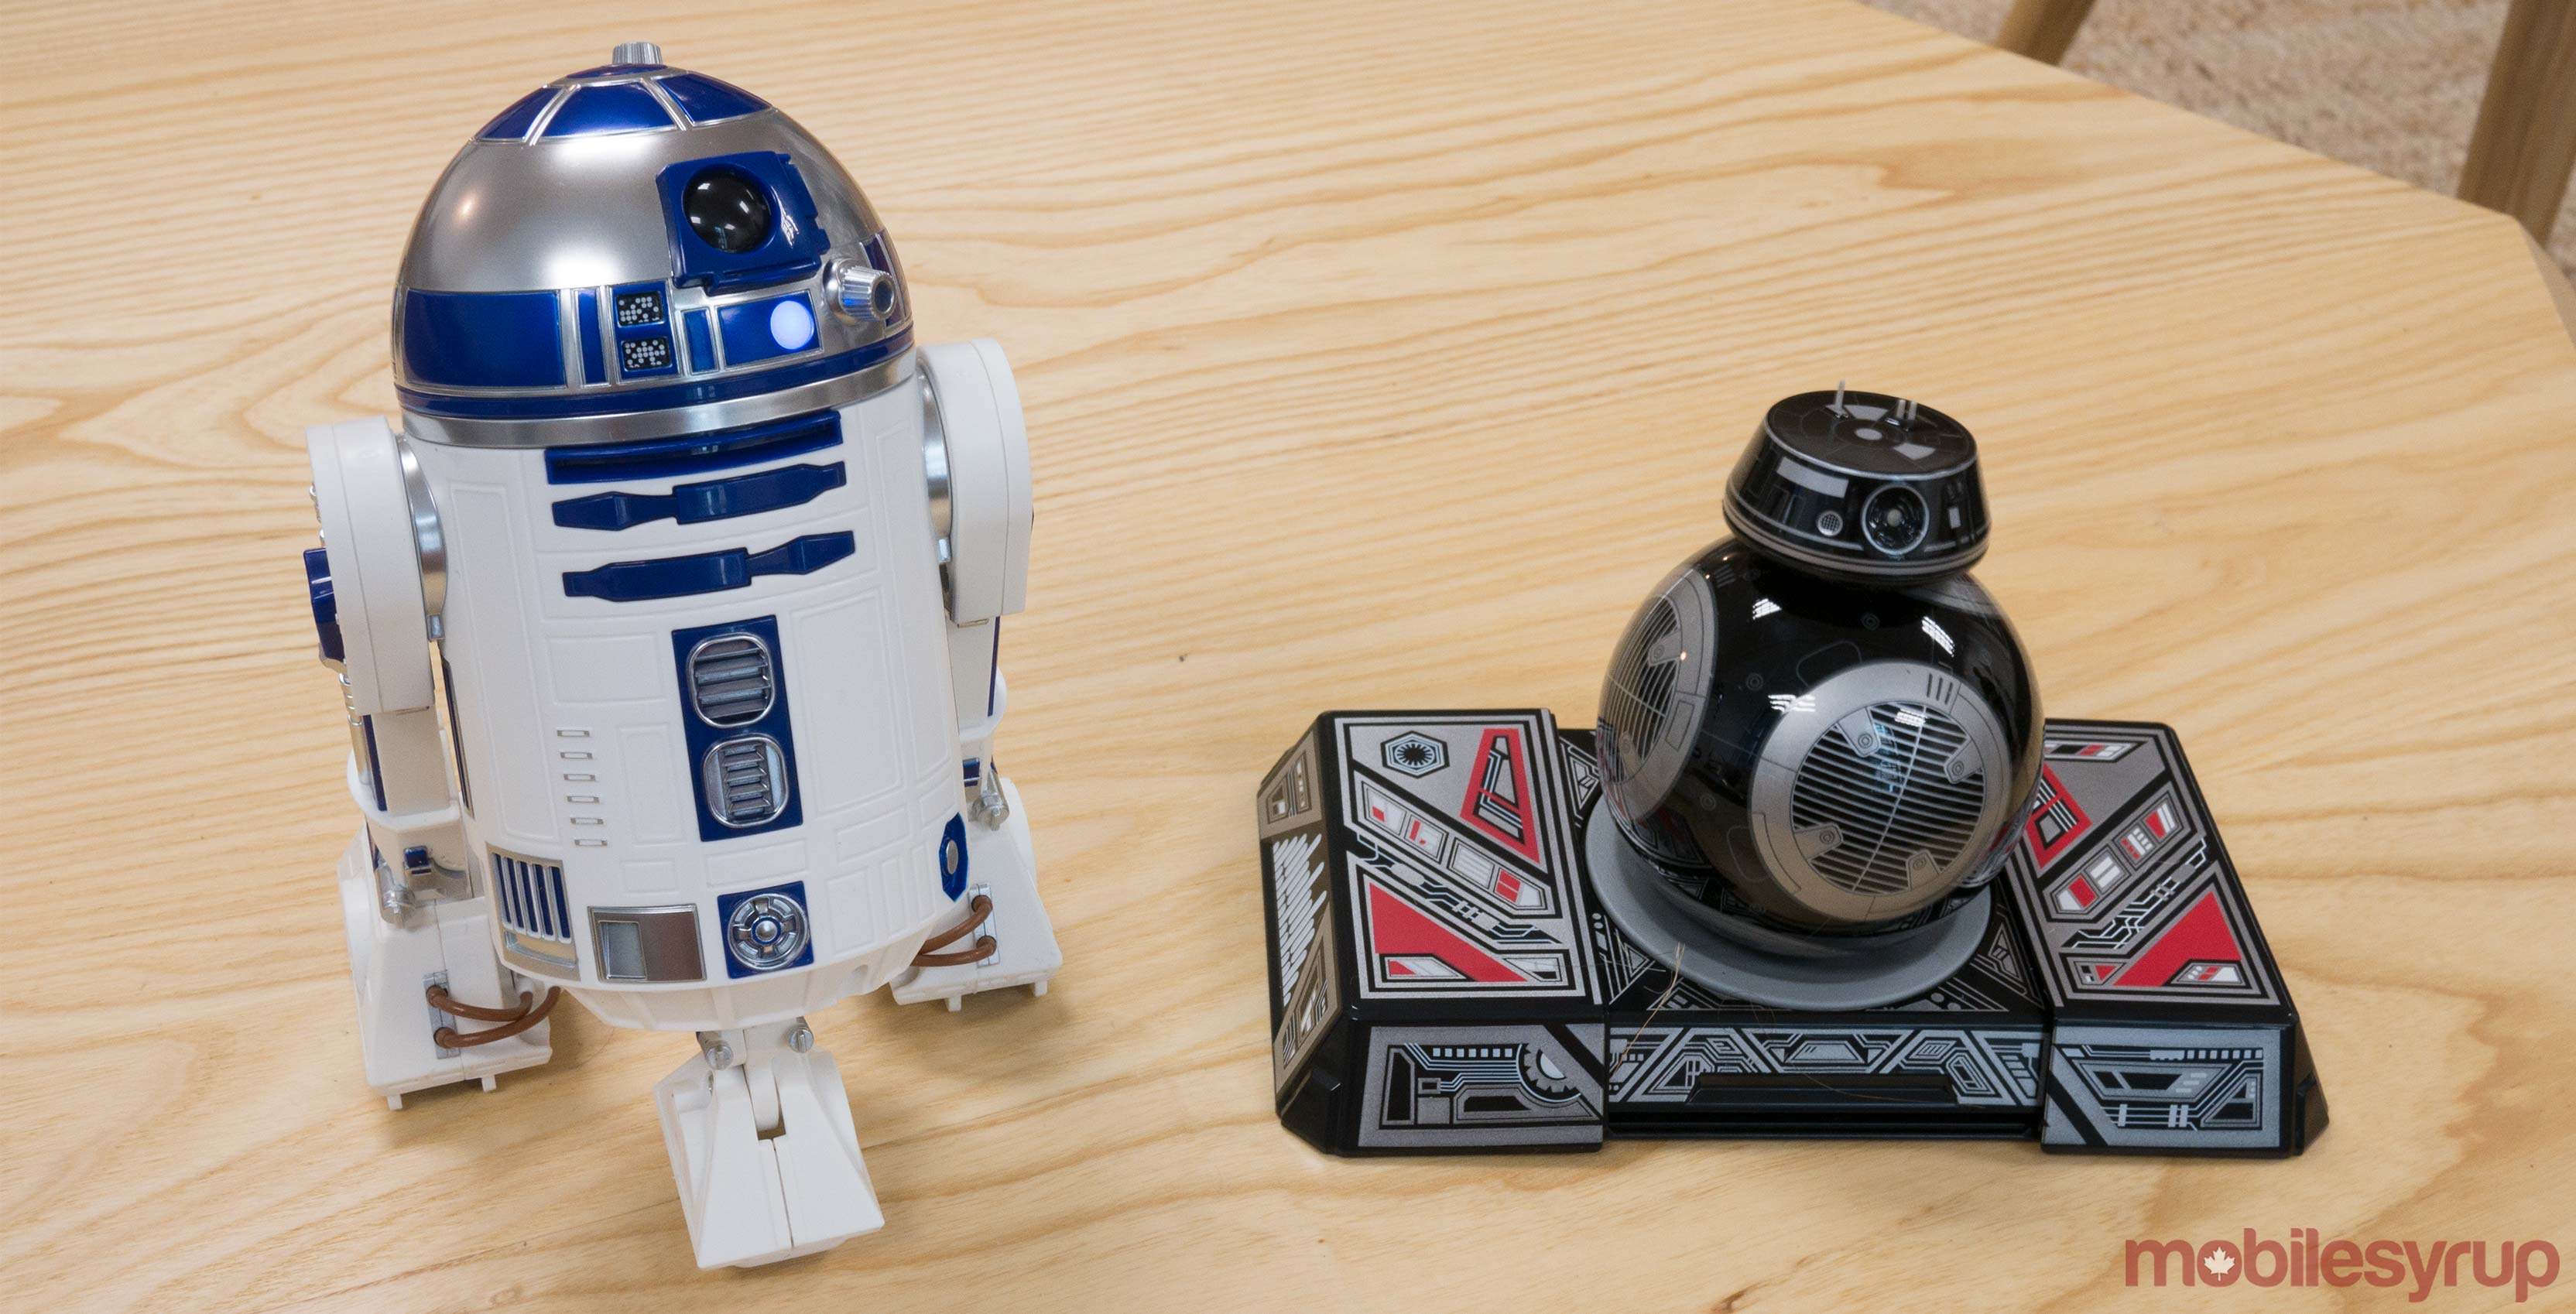 BB-9E and R2-D2